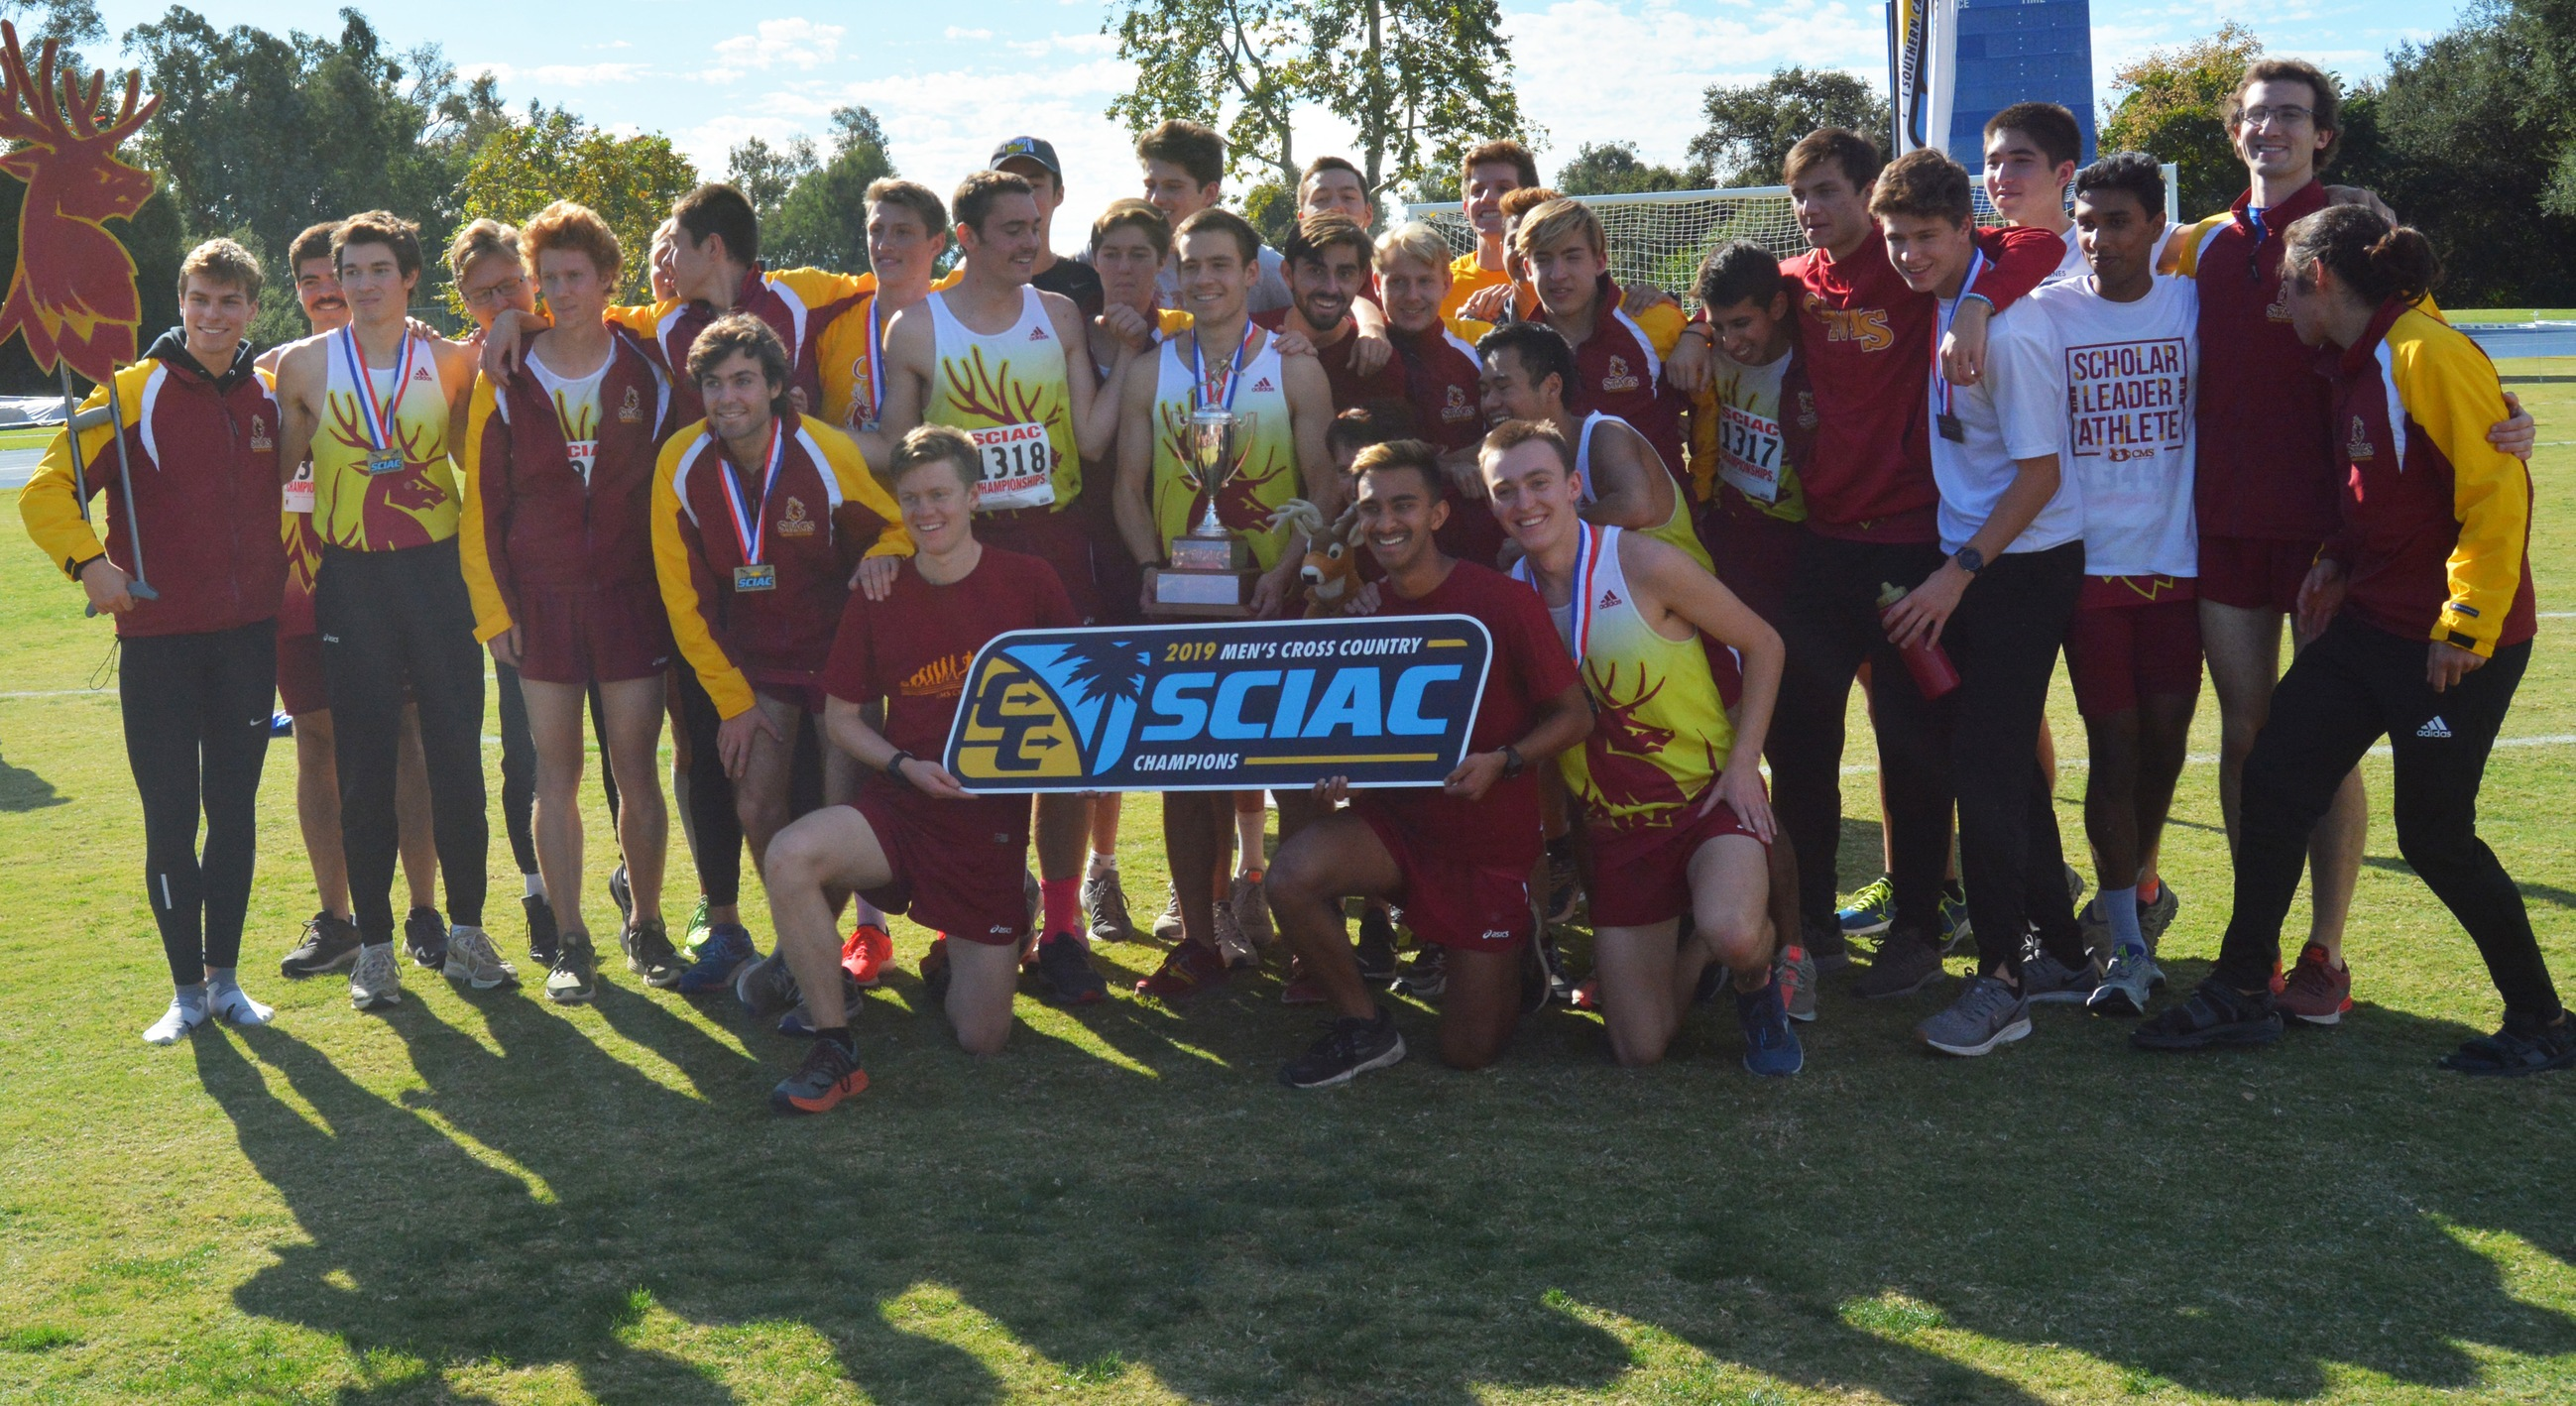 CMS men's cross country celebrating the SCIAC title